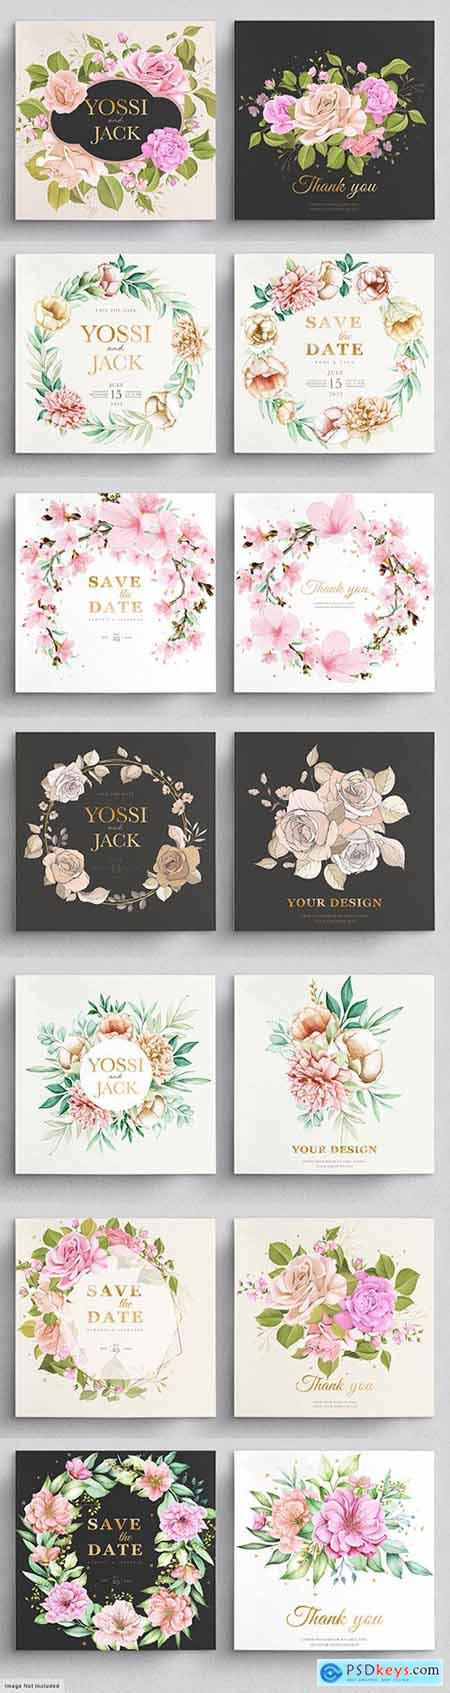 Wedding elegant invitation template with flowers and leaves